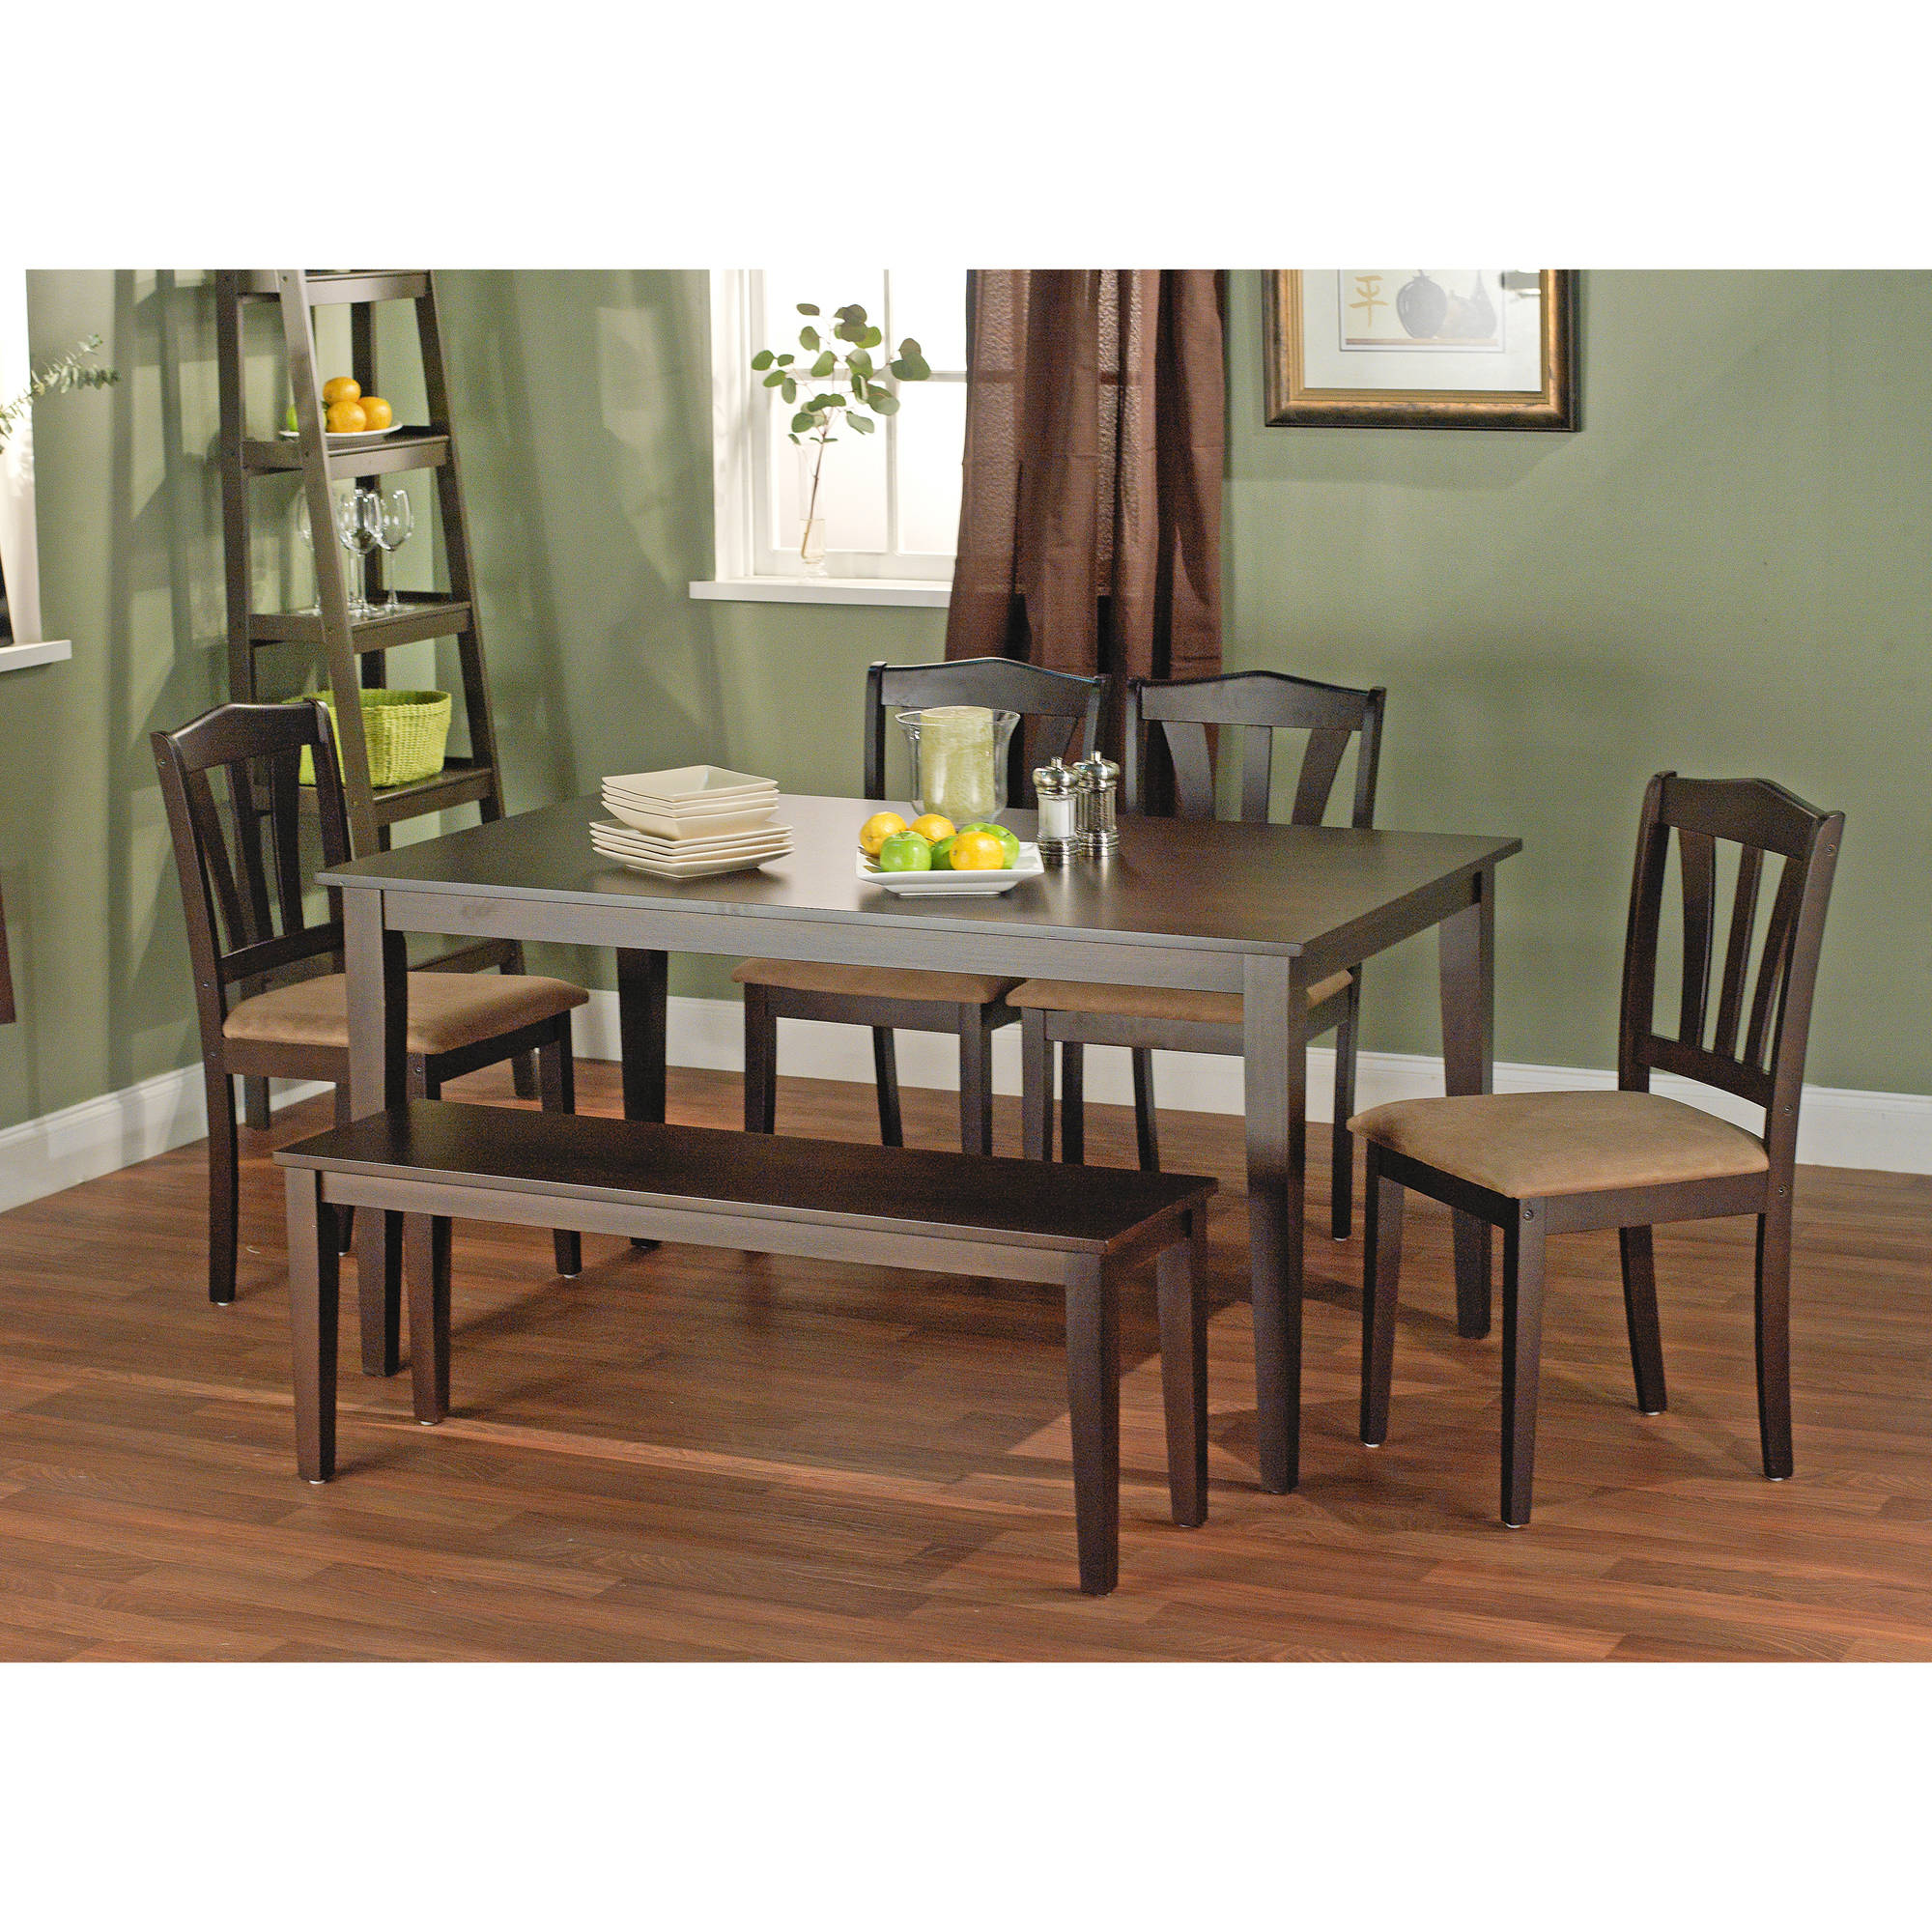 Metropolitan 6 Piece Dining Set with Bench Espresso Box 2 of 2